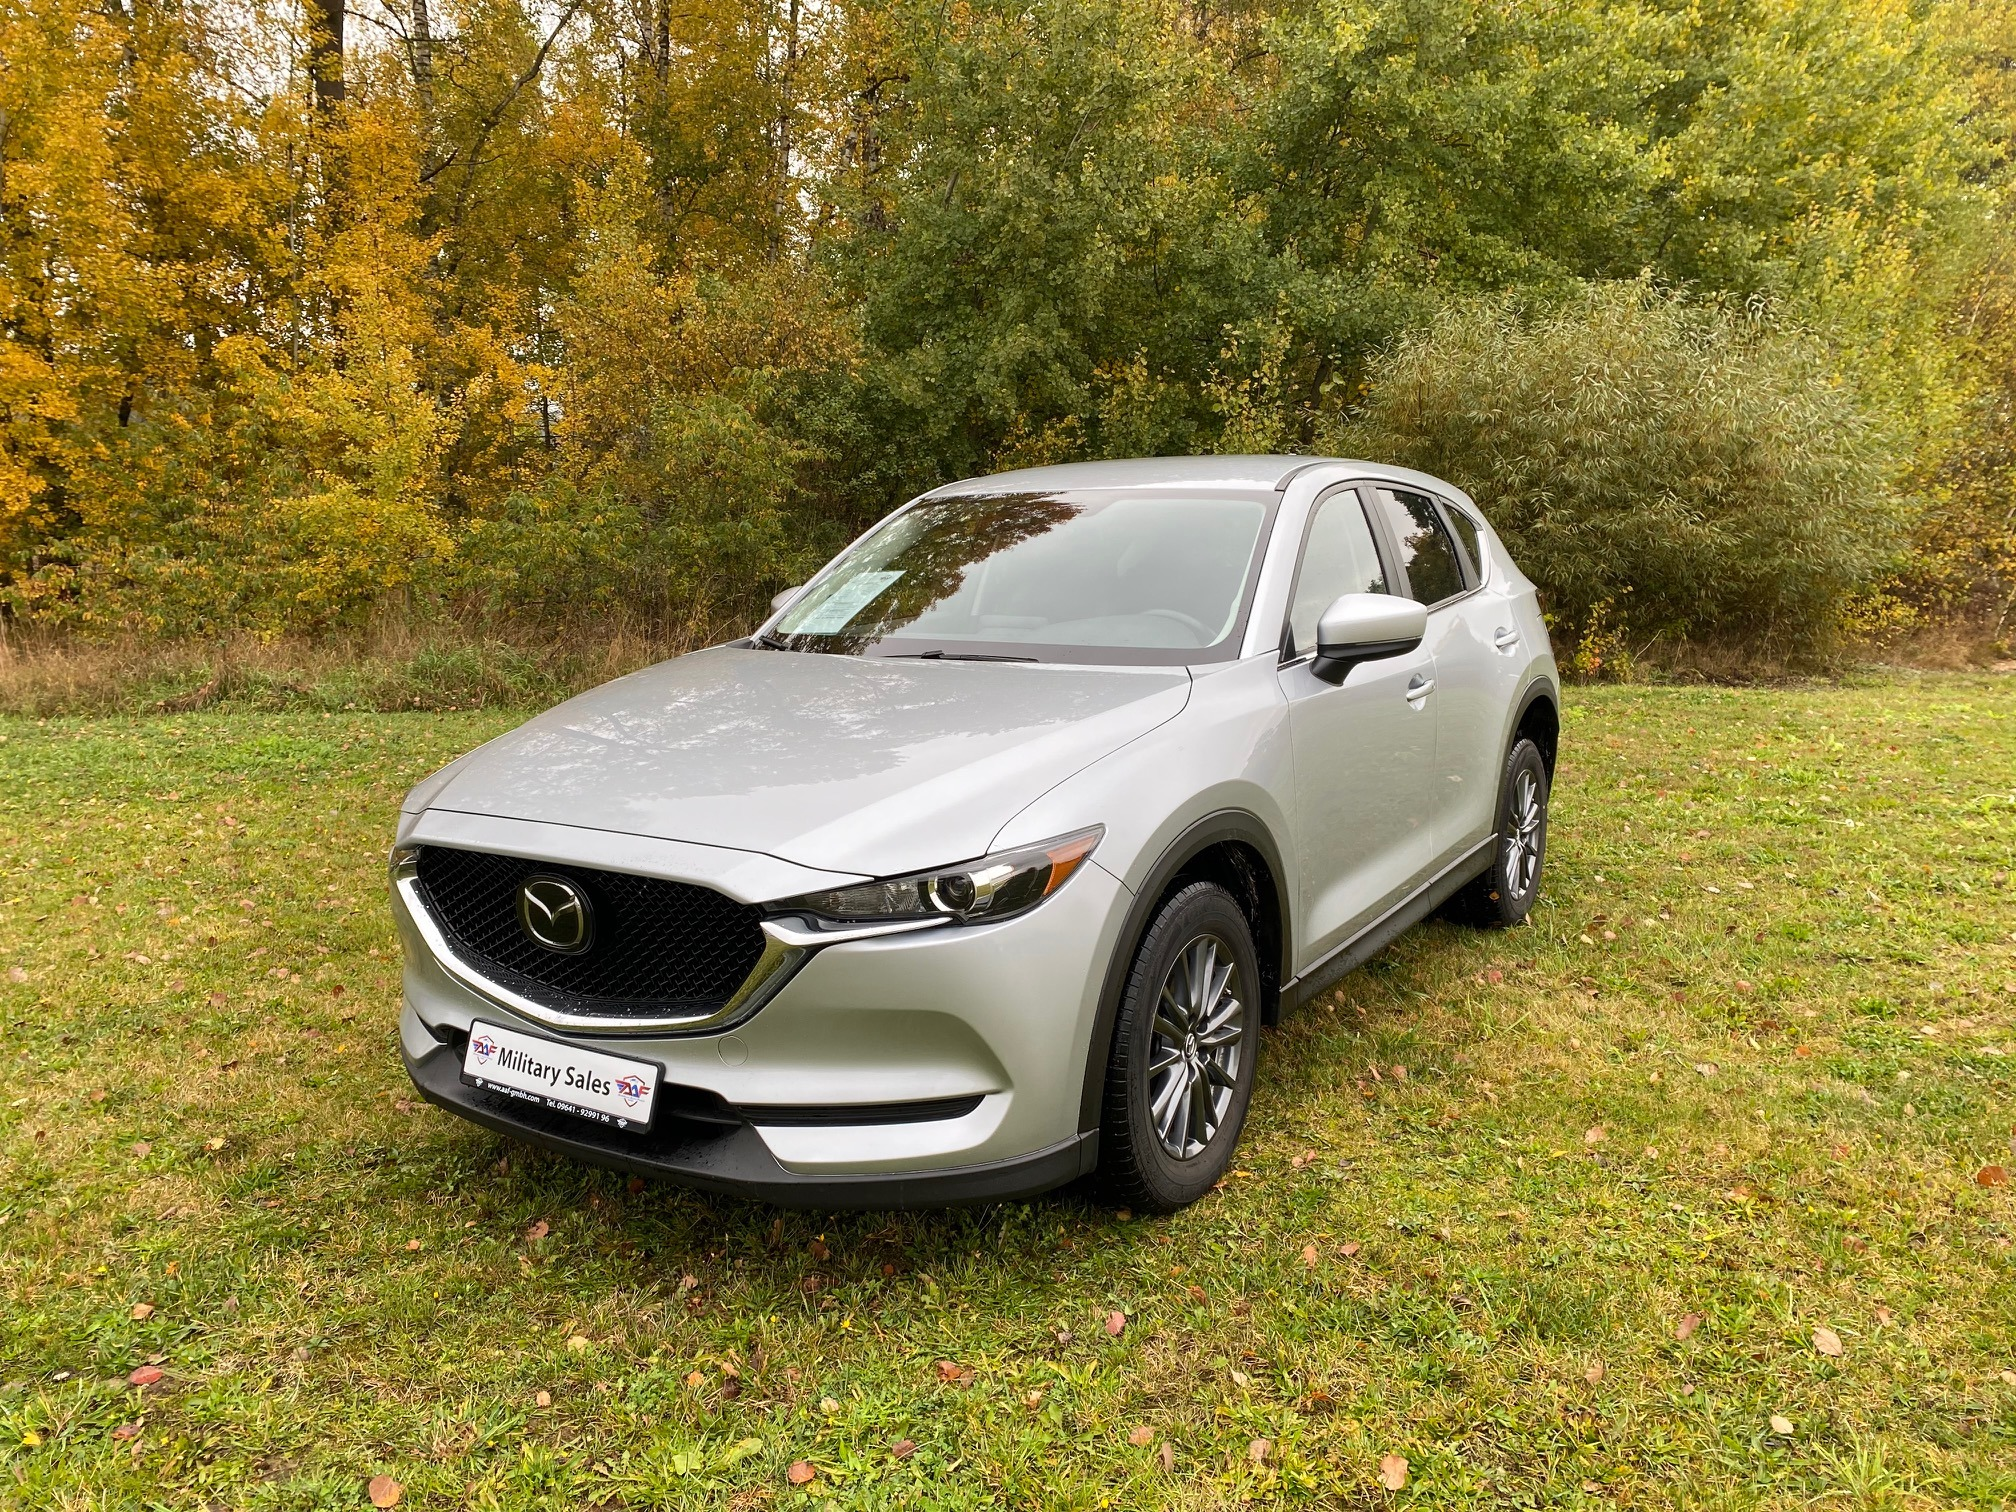 *New Arrival* </br>2019 Mazda CX 5 Touring </br>as low as </br>$199 per paycheck